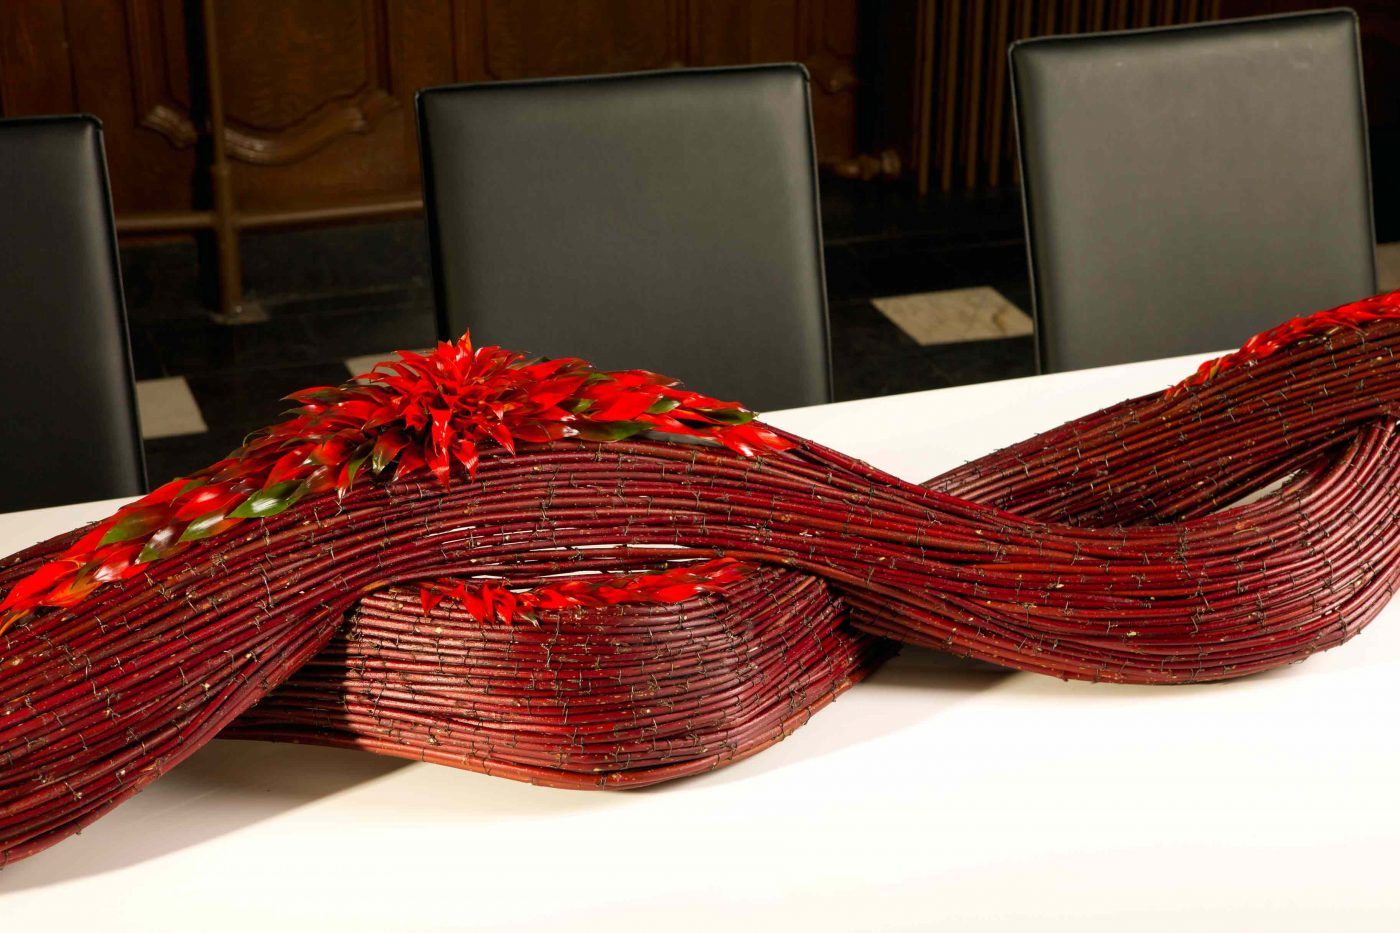 Table decorations are one of the most important subjects in floristry education of the EFDE. Here we see a decoration made of red cornus curling over the table with in the center part red Bromelia flowers used for making a contrast of texture.